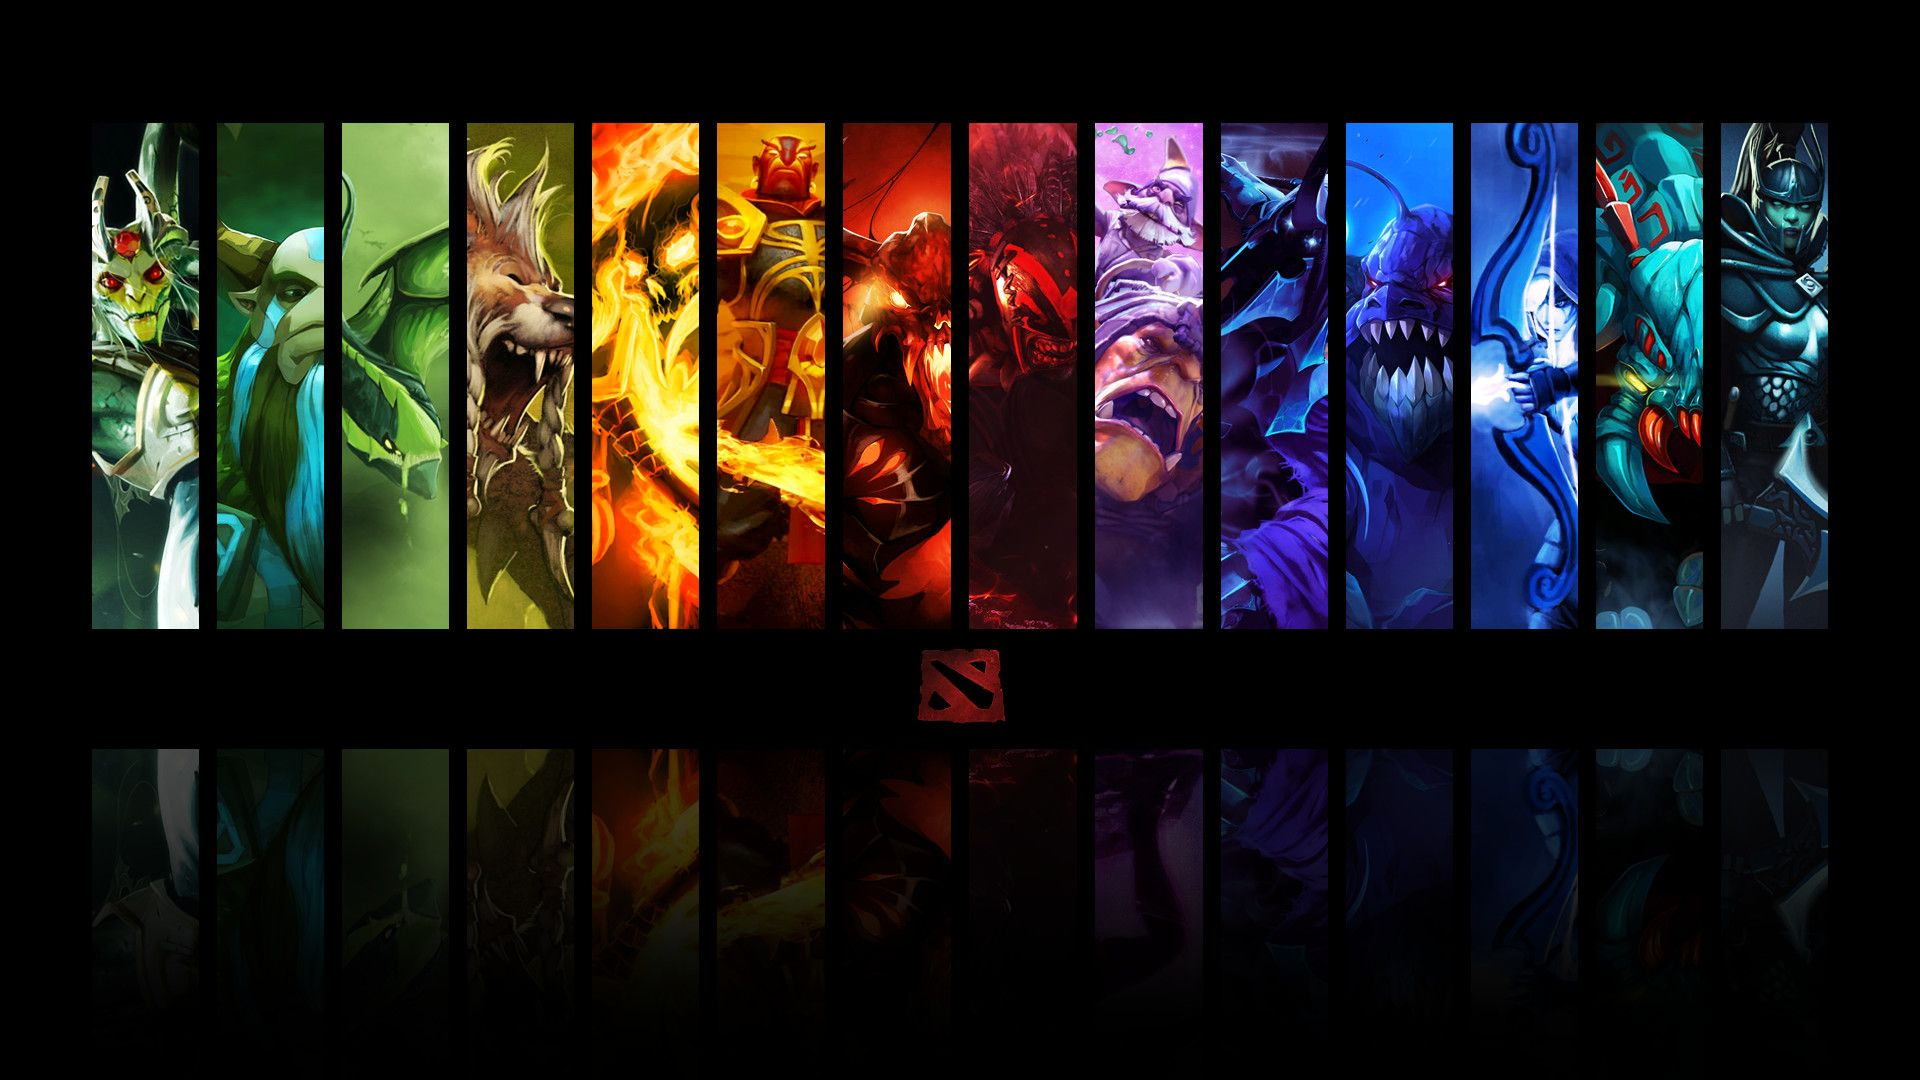 Vertical Dota 2 Hd Wallpaper 1920x1080 1920x1080 For Windows